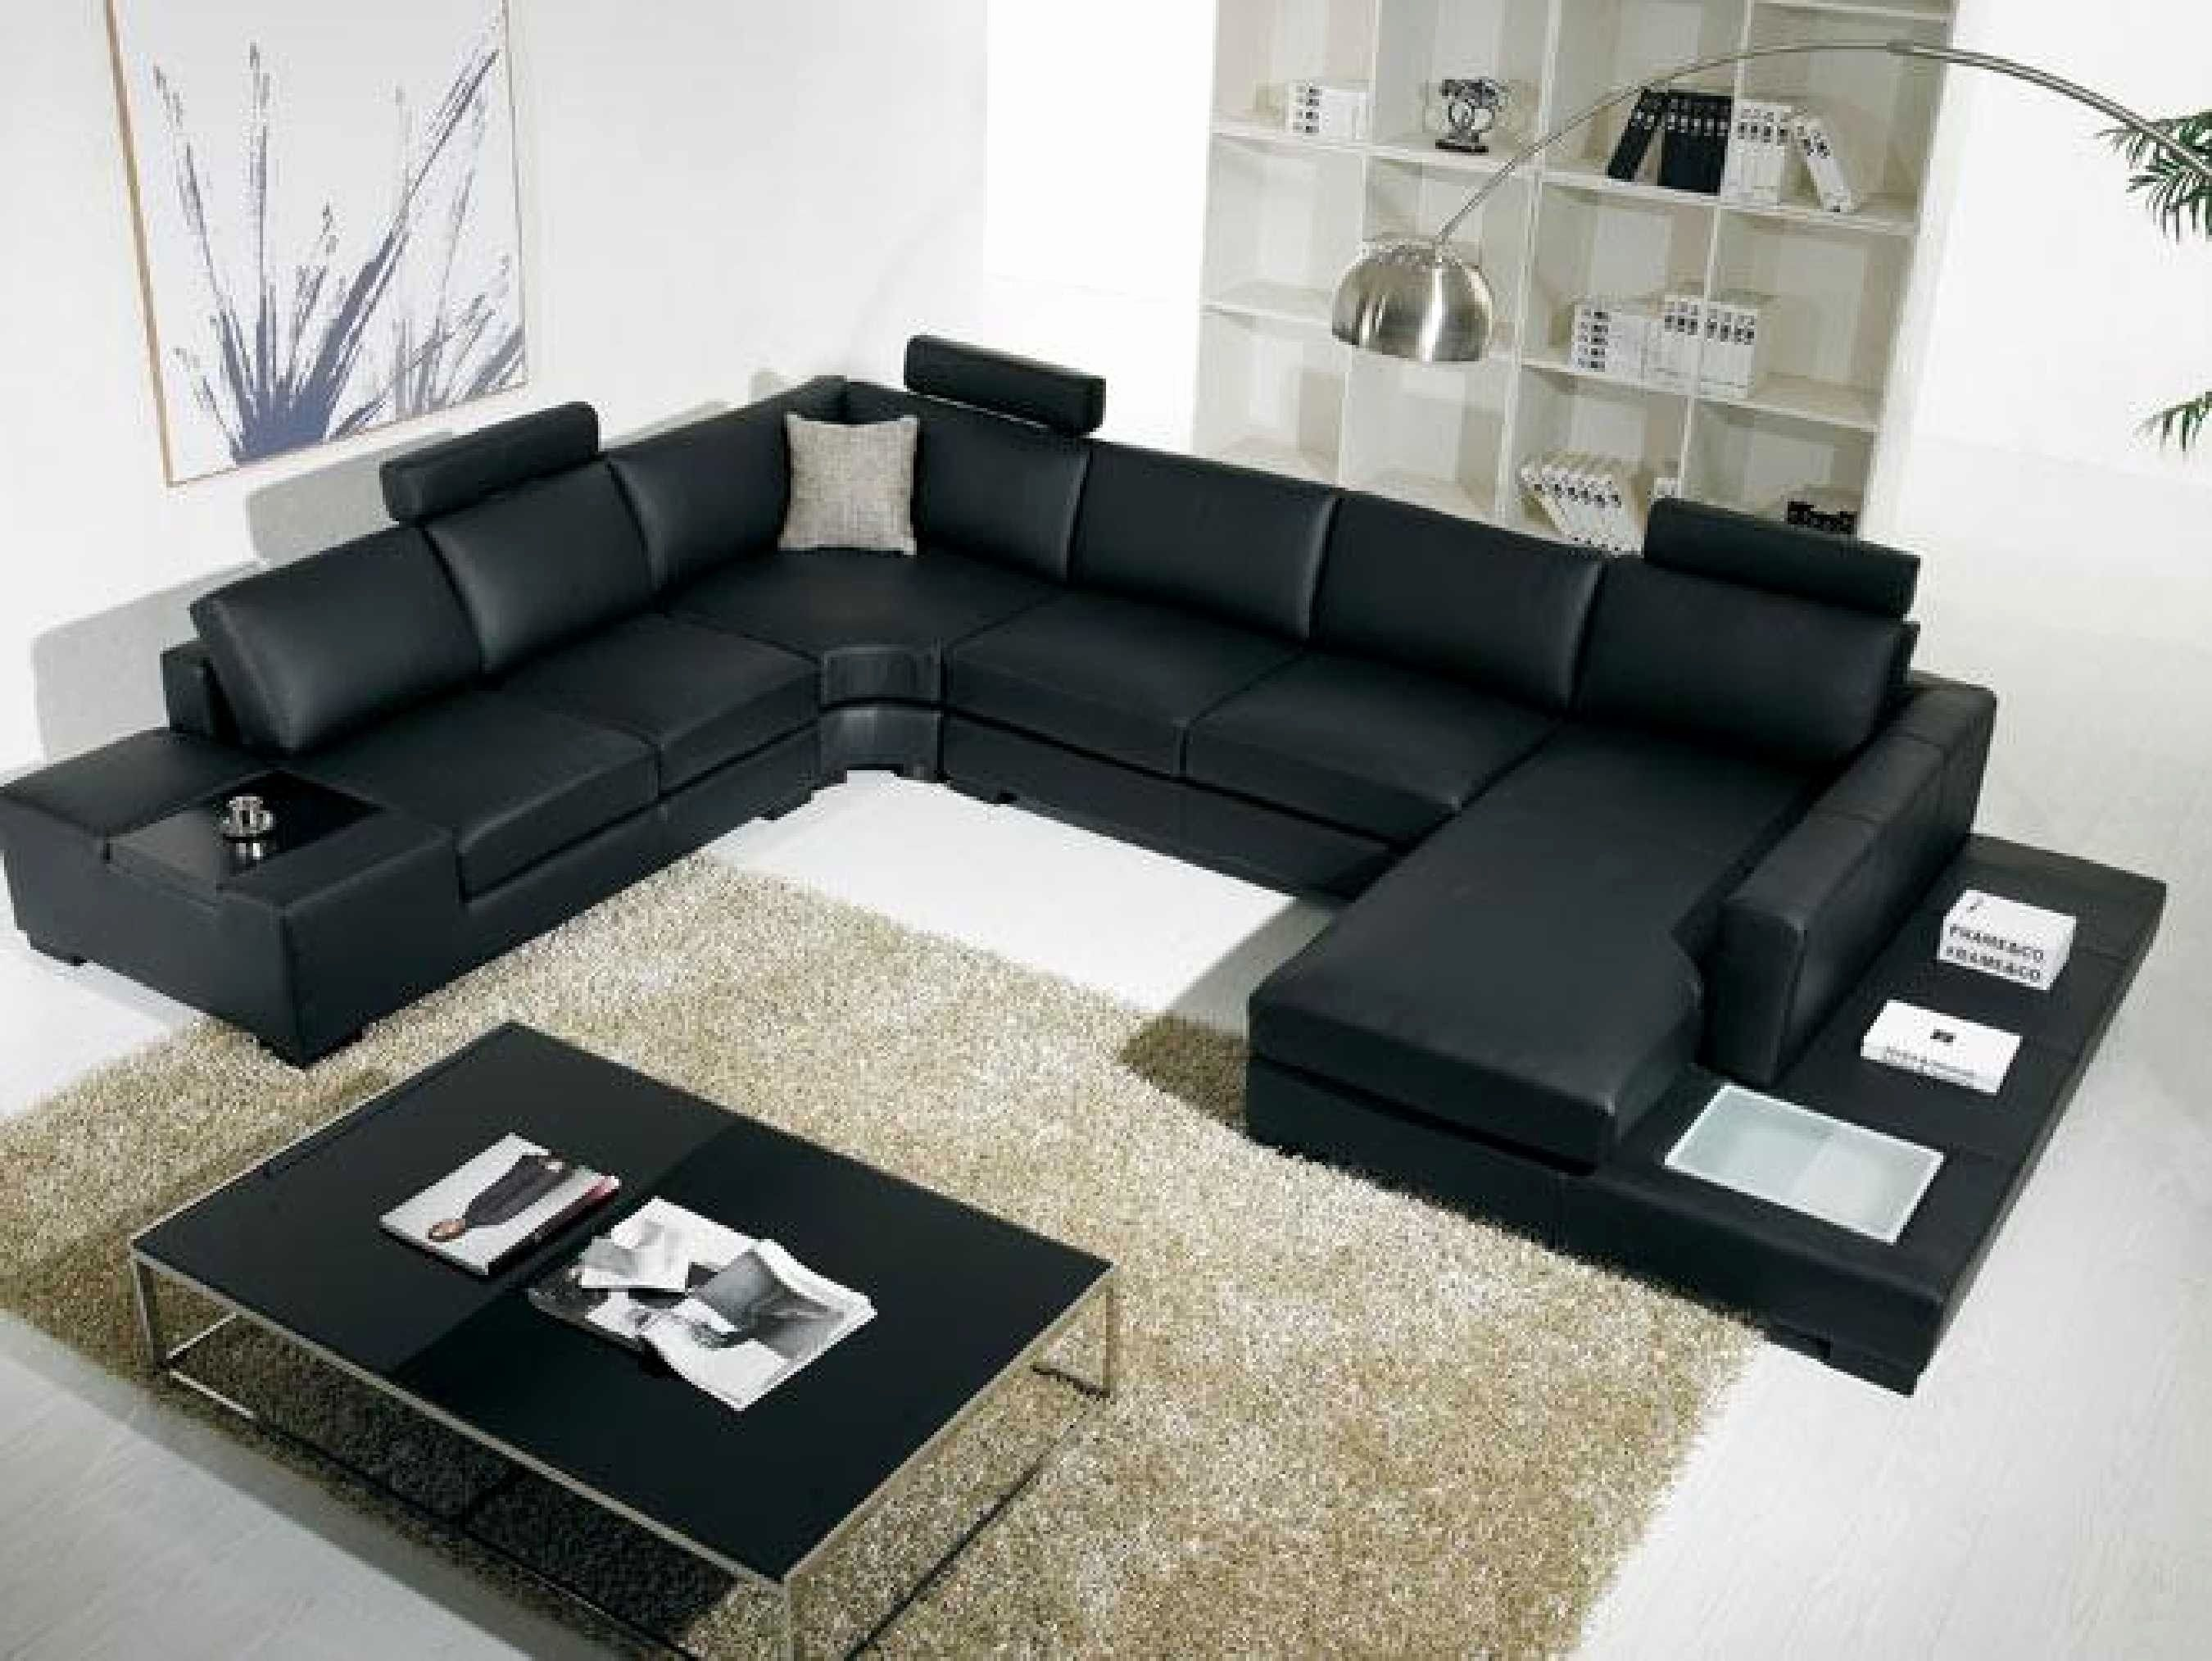 Armstrong Sofa Sofa Contemporary Furniture Design Contemporary